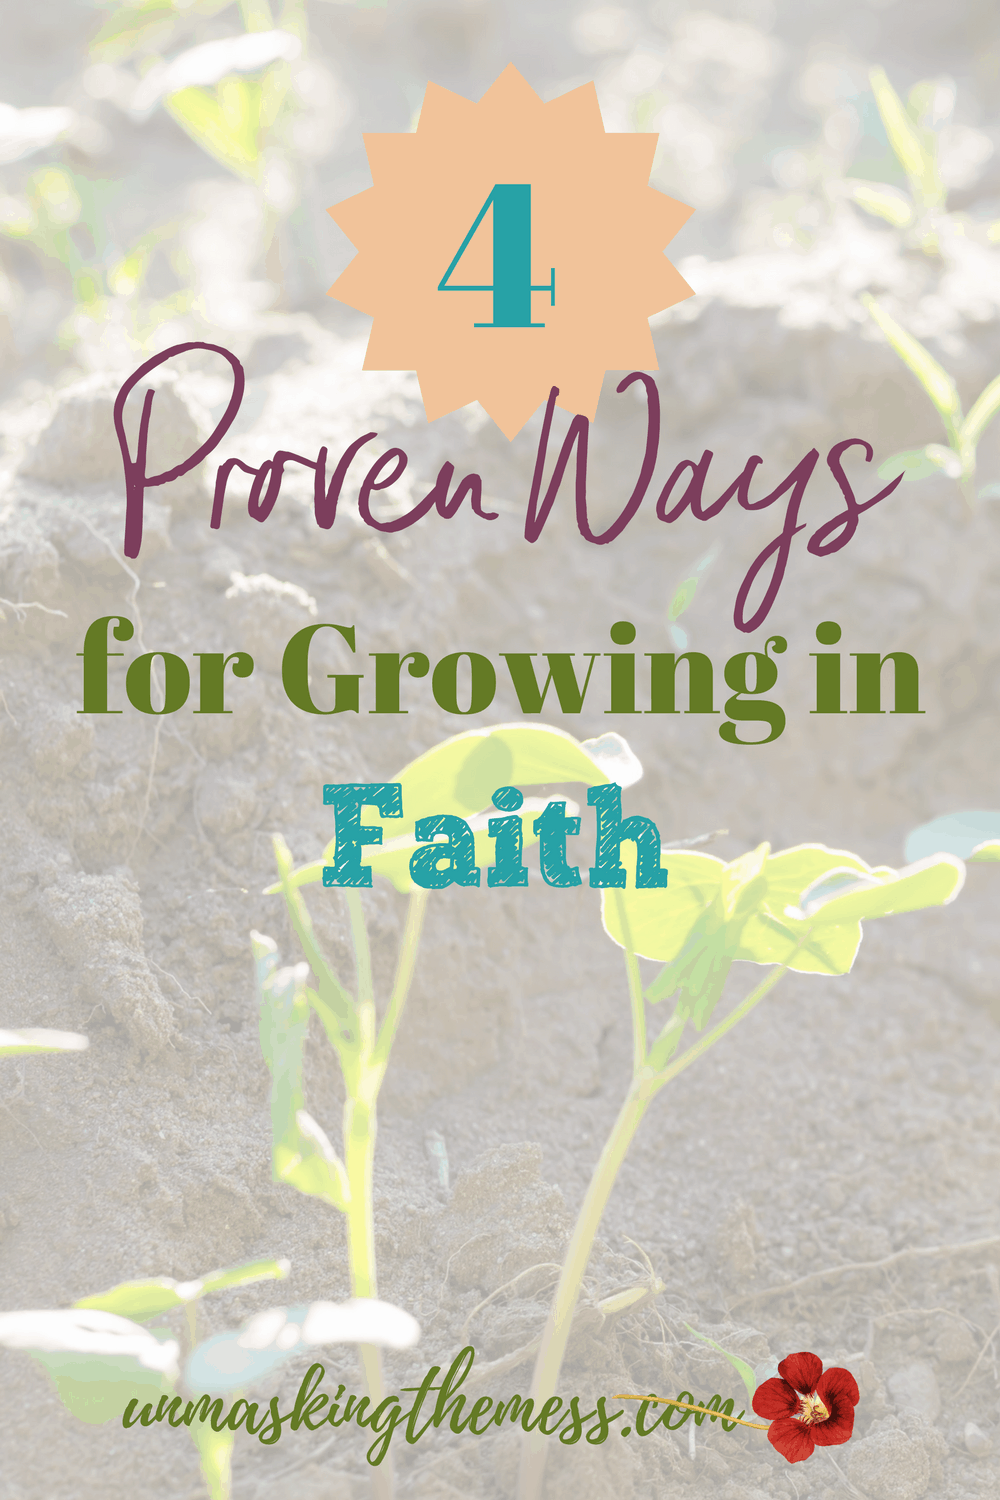 4 Proven Ways for Growing in Faith. Faith growth doesn't happen by itself. We can't make it grow without God's help. Are you relying on yourself or growing in faith with God?